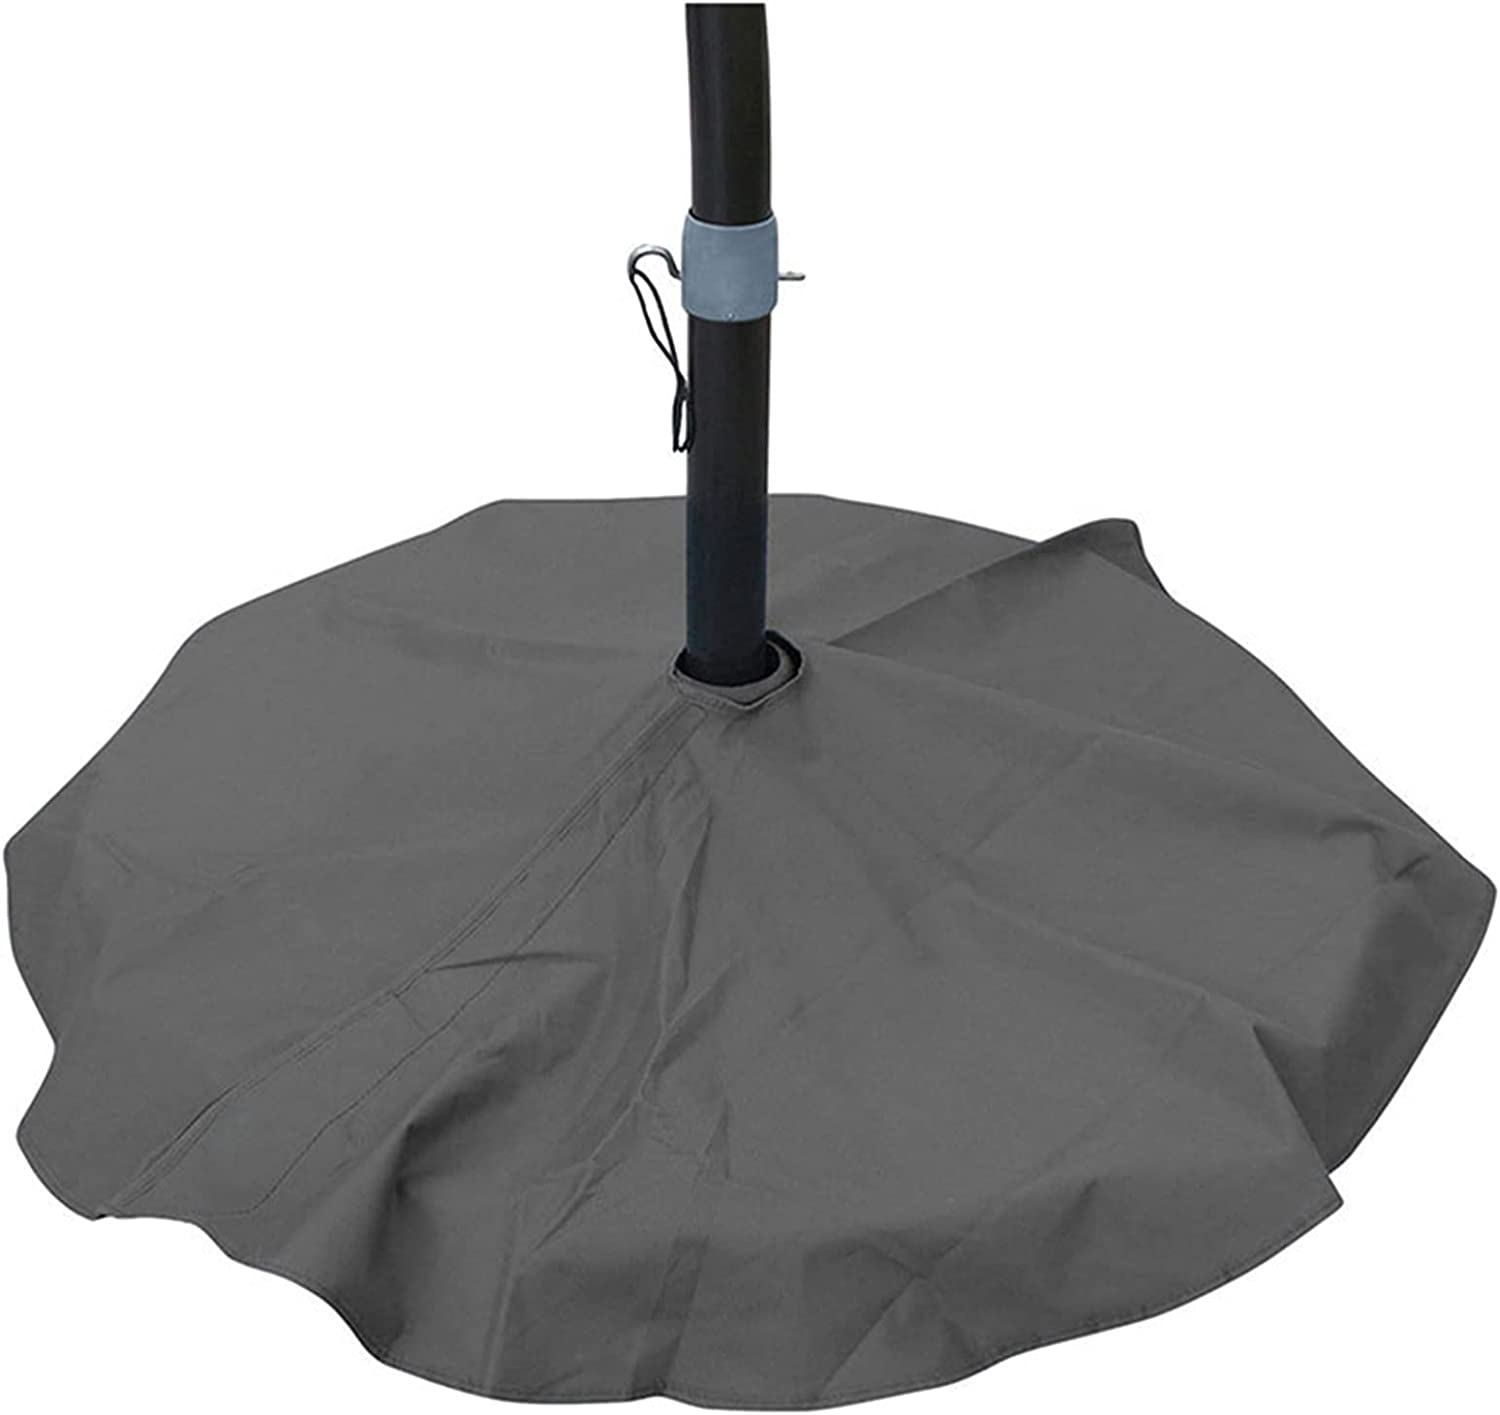 Alexsix excellence Popular brand Parasol Stands Cover Round C Umbrella Oxford Stand